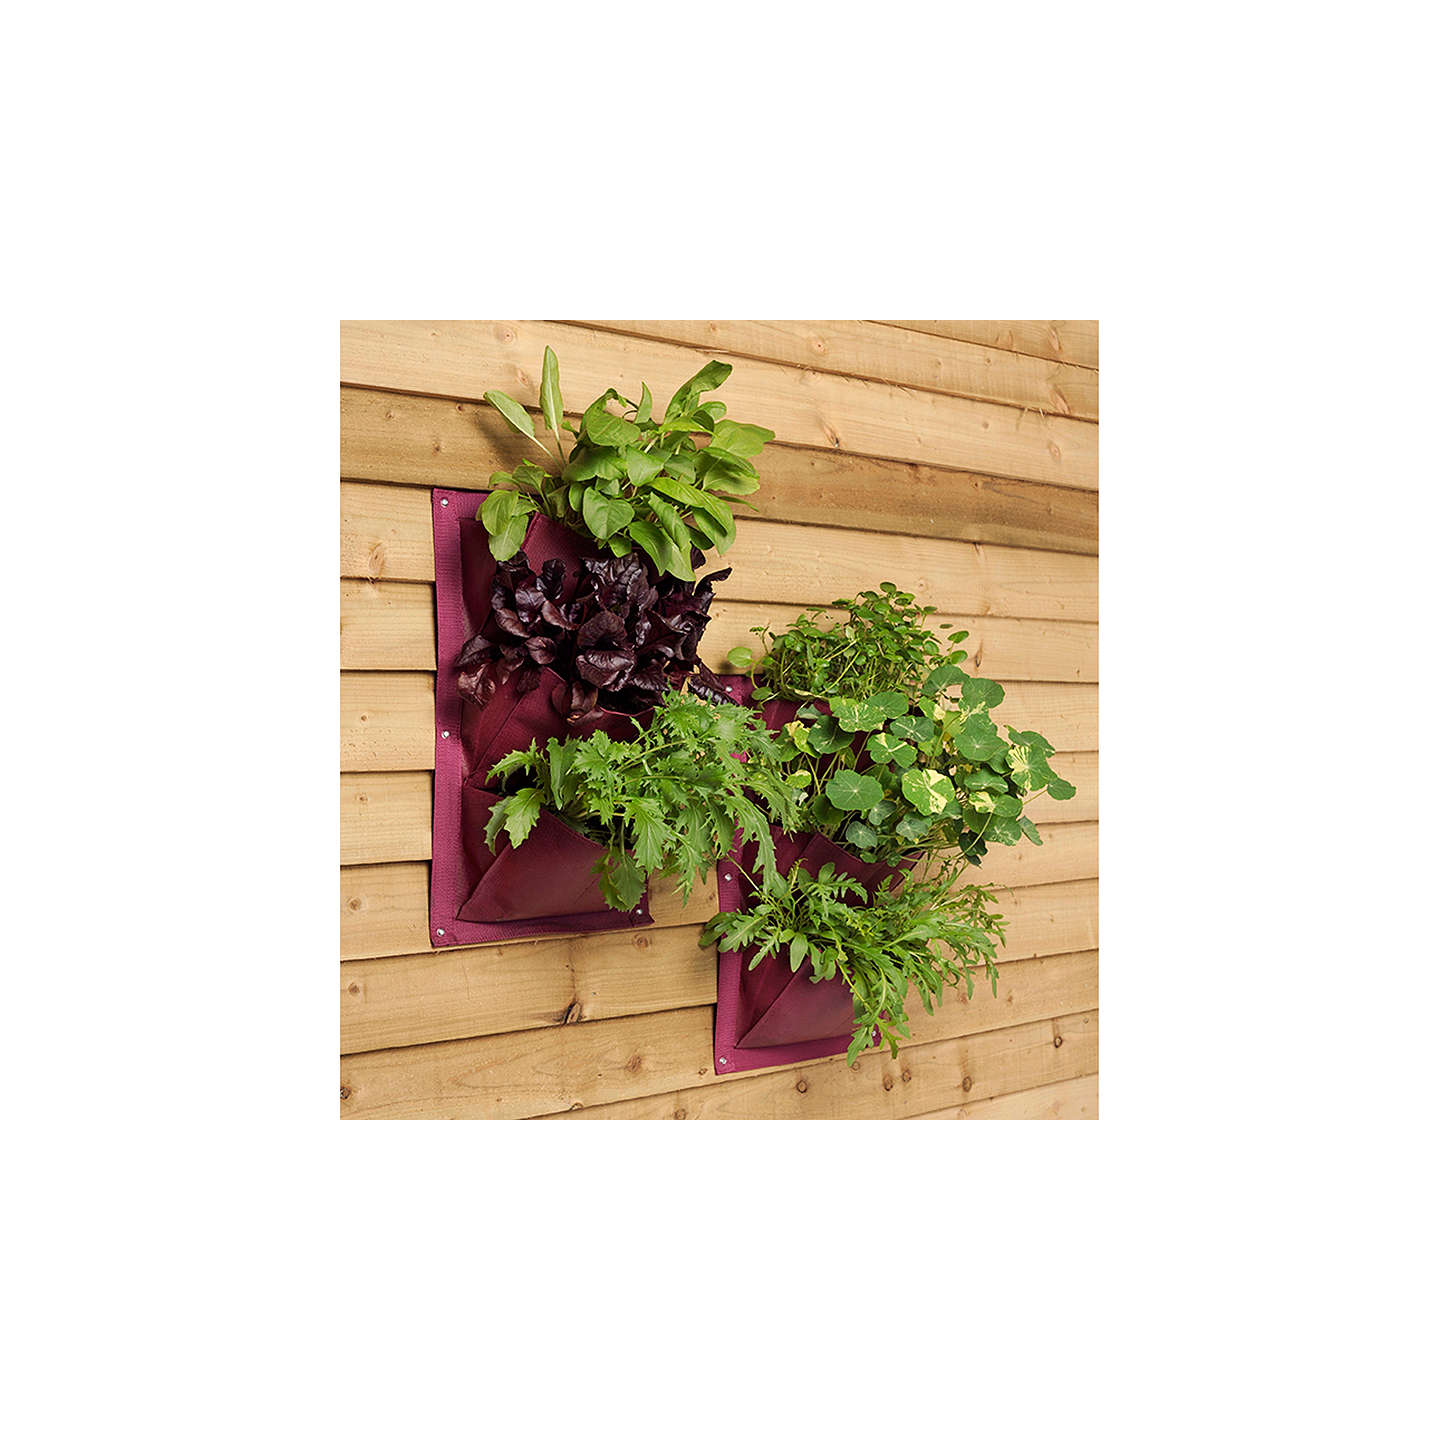 BuyBurgon & Ball Vertical Wall Planter, Aubergine Online at johnlewis.com